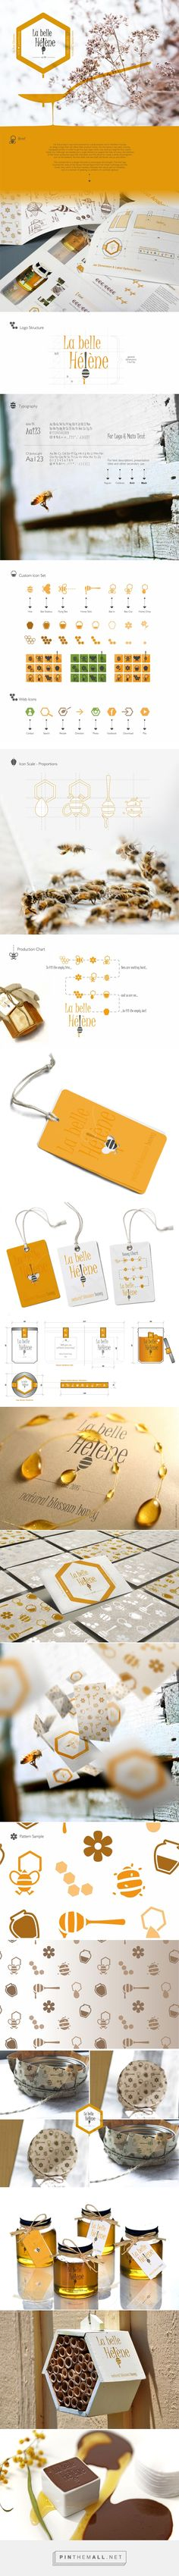 Honey | Logo & packaging on Behance - created via https://pinthemall.net